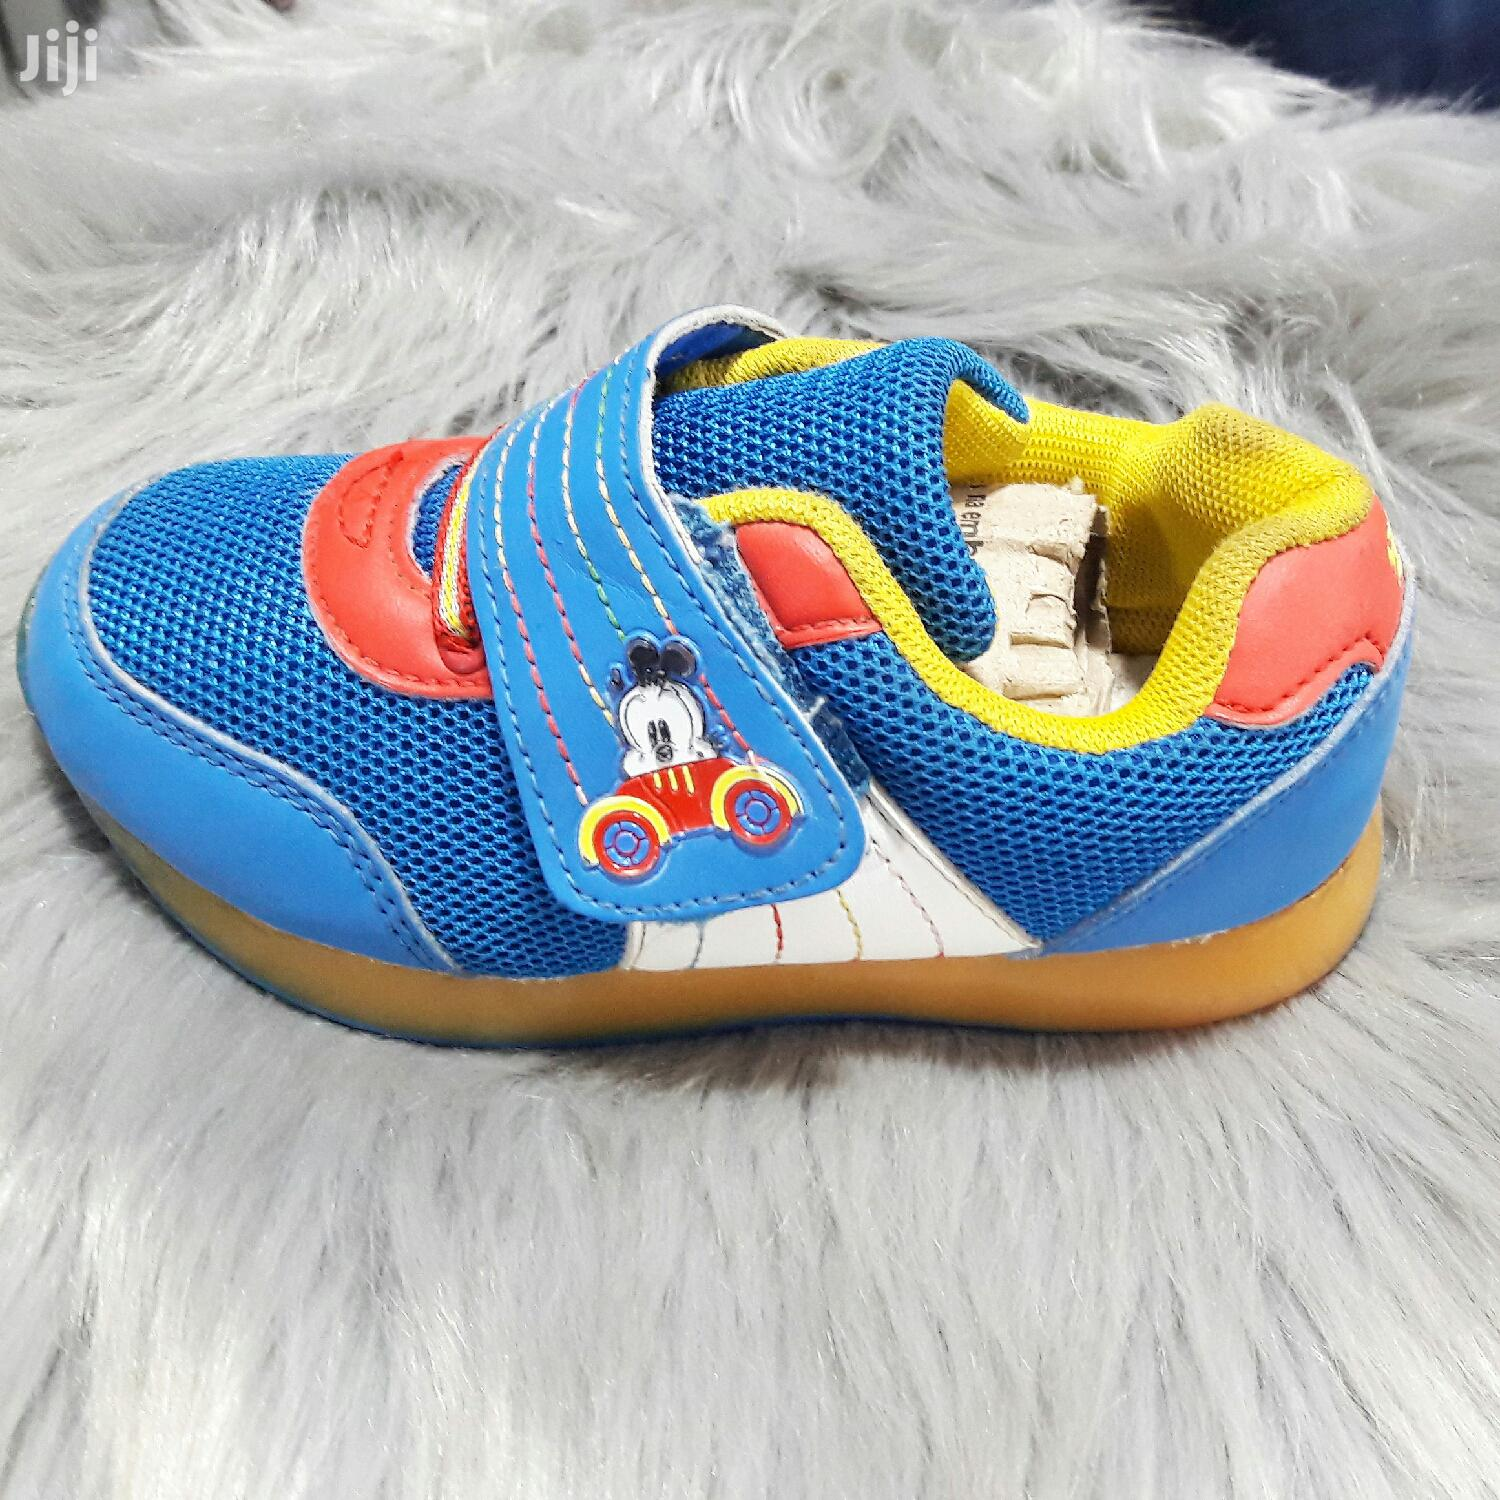 Kids Shoes Available In All Sizes